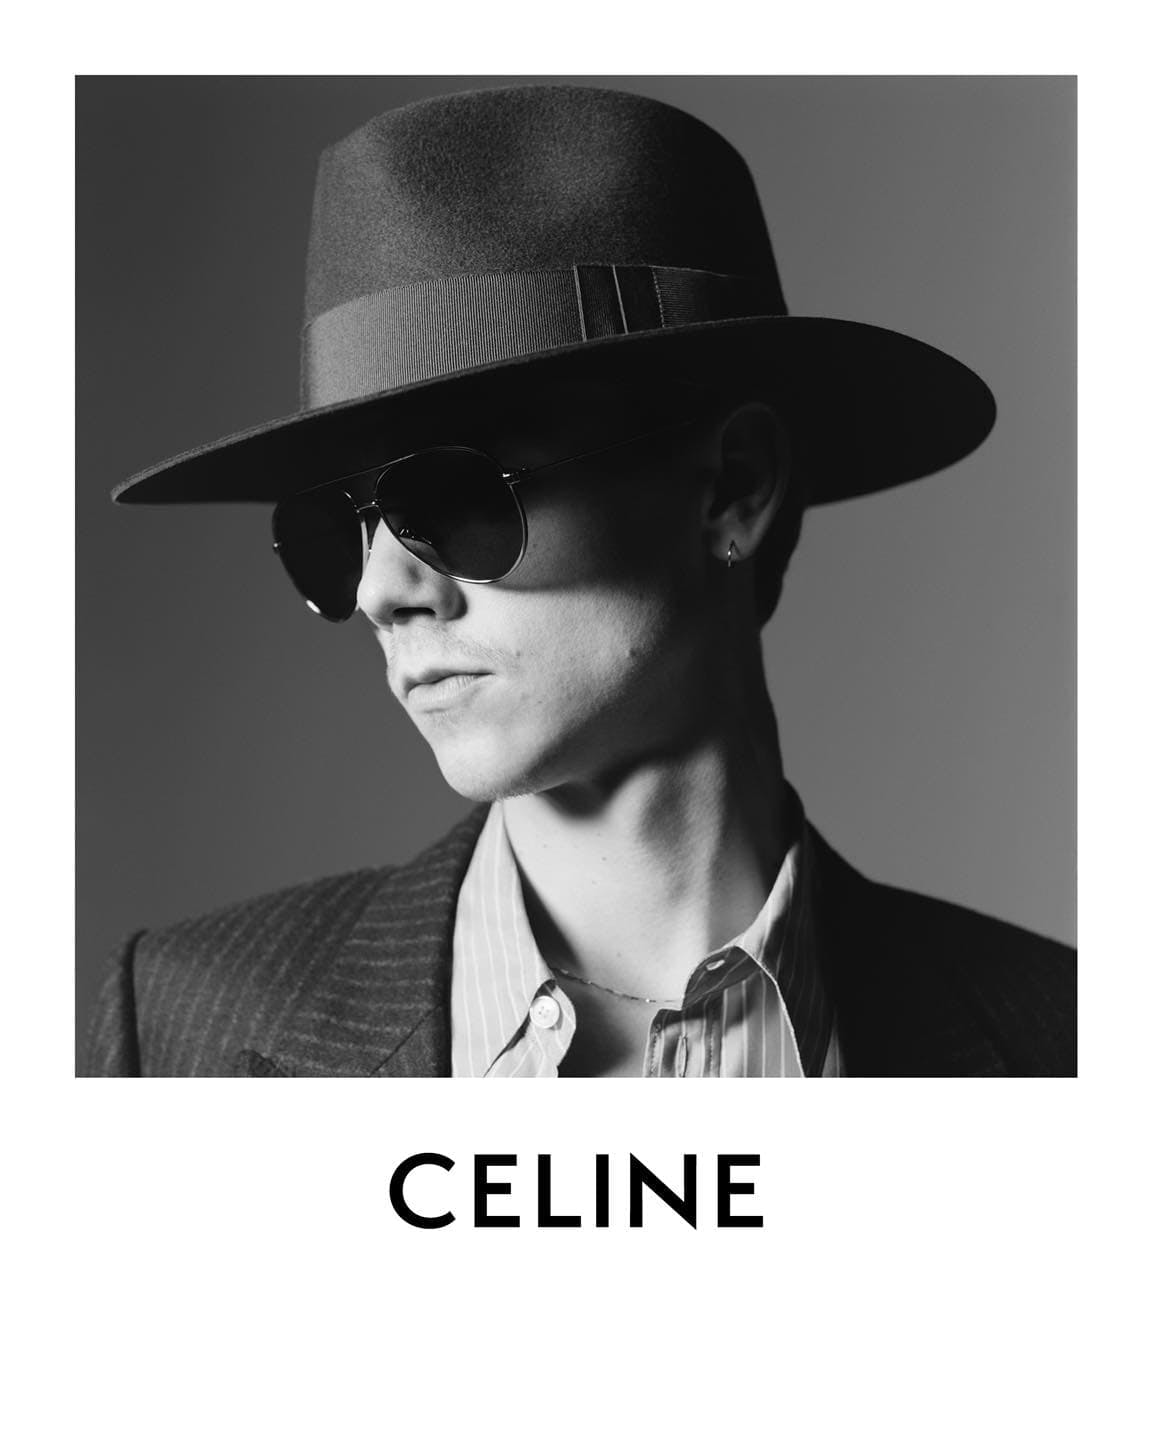 CELINE 'PORTRAIT OF AN ACTOR' SPRING 2021 AD CAMPAIGN WITH THOMAS BRODIE-SANGSTER